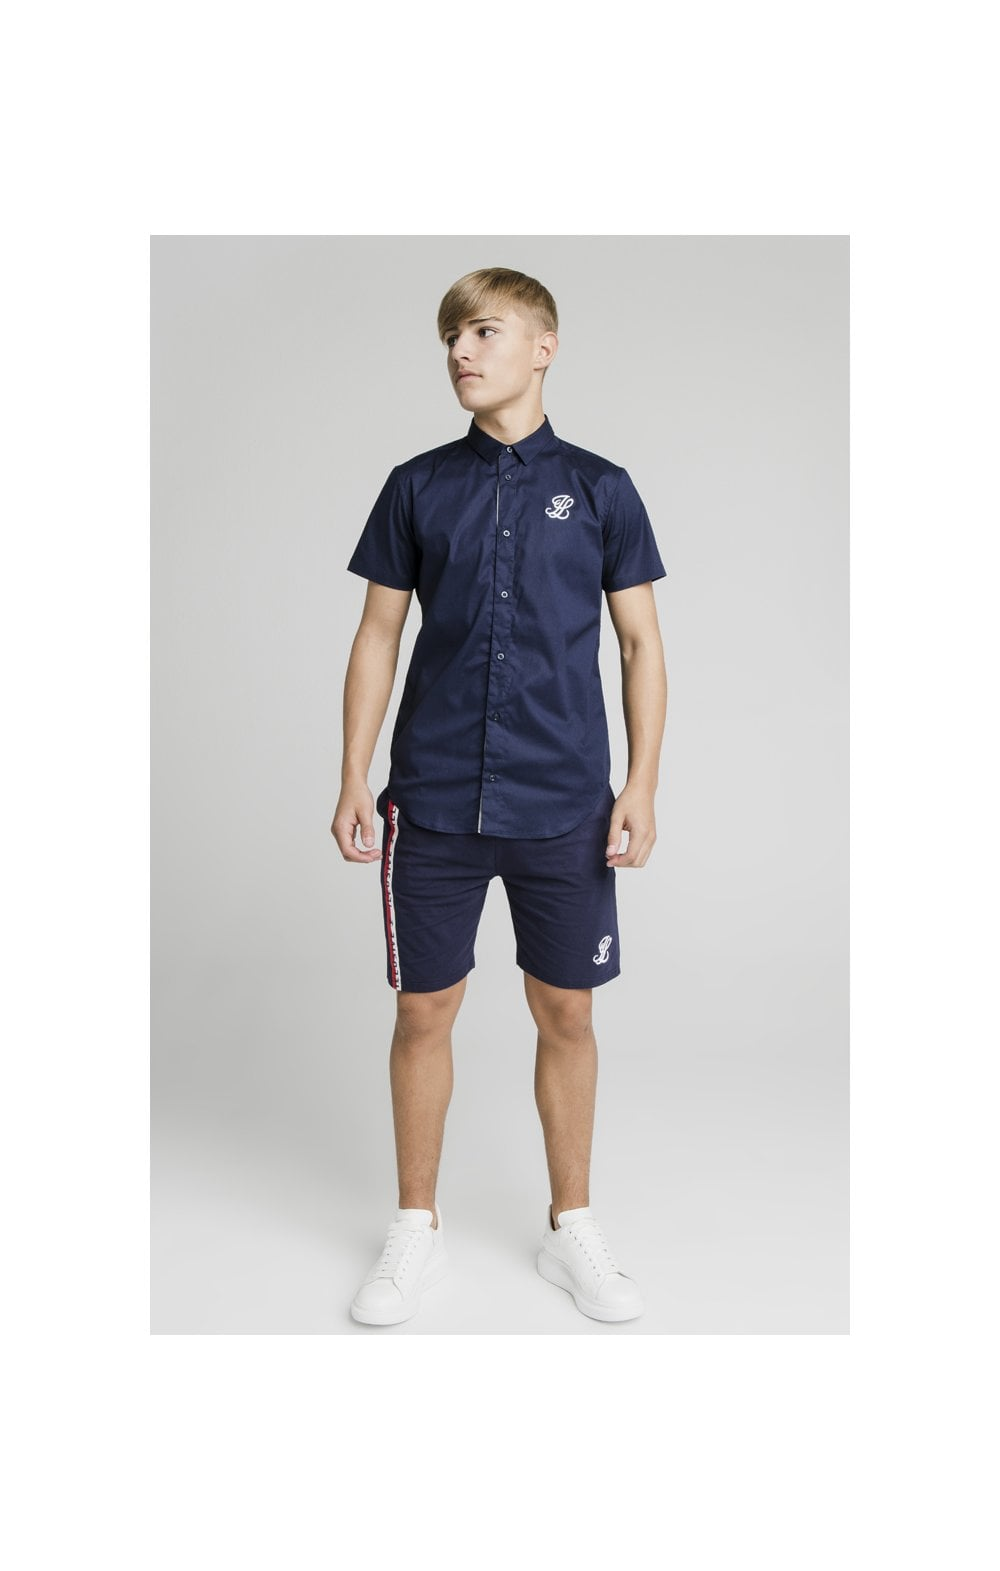 Illusive London Side Tape Jersey Shorts - Navy (4)